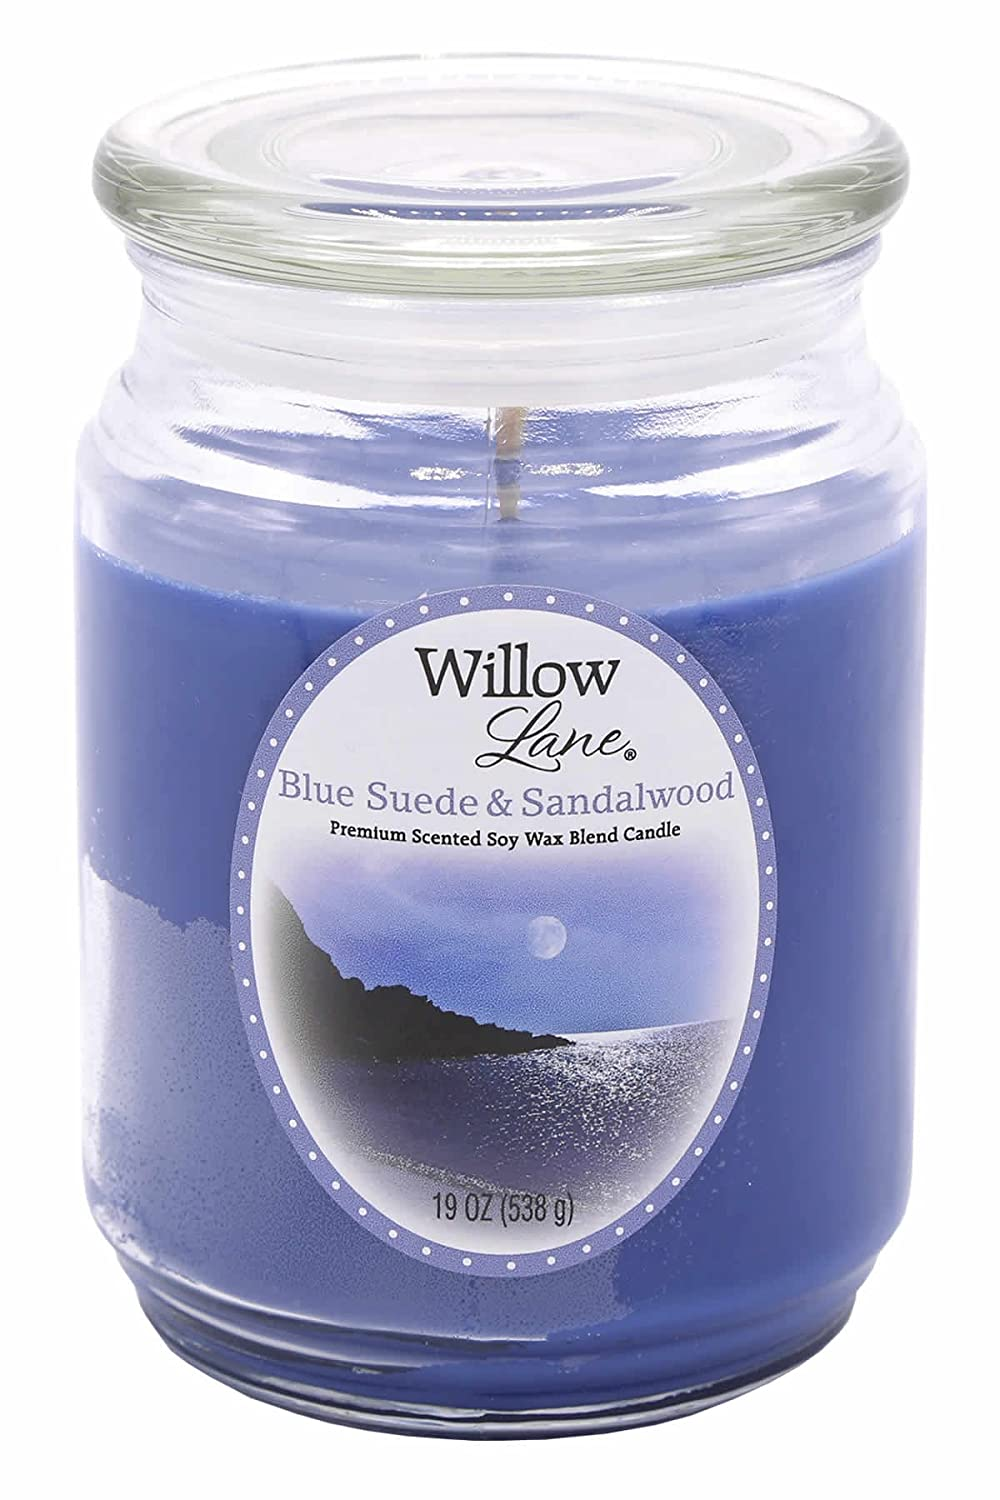 Candle Lite 1646033 Scented Candle、ブルースエード&サンダルウッド、19-oz。Jar 19 oz ブルー 1646033 B003RULYIM  1